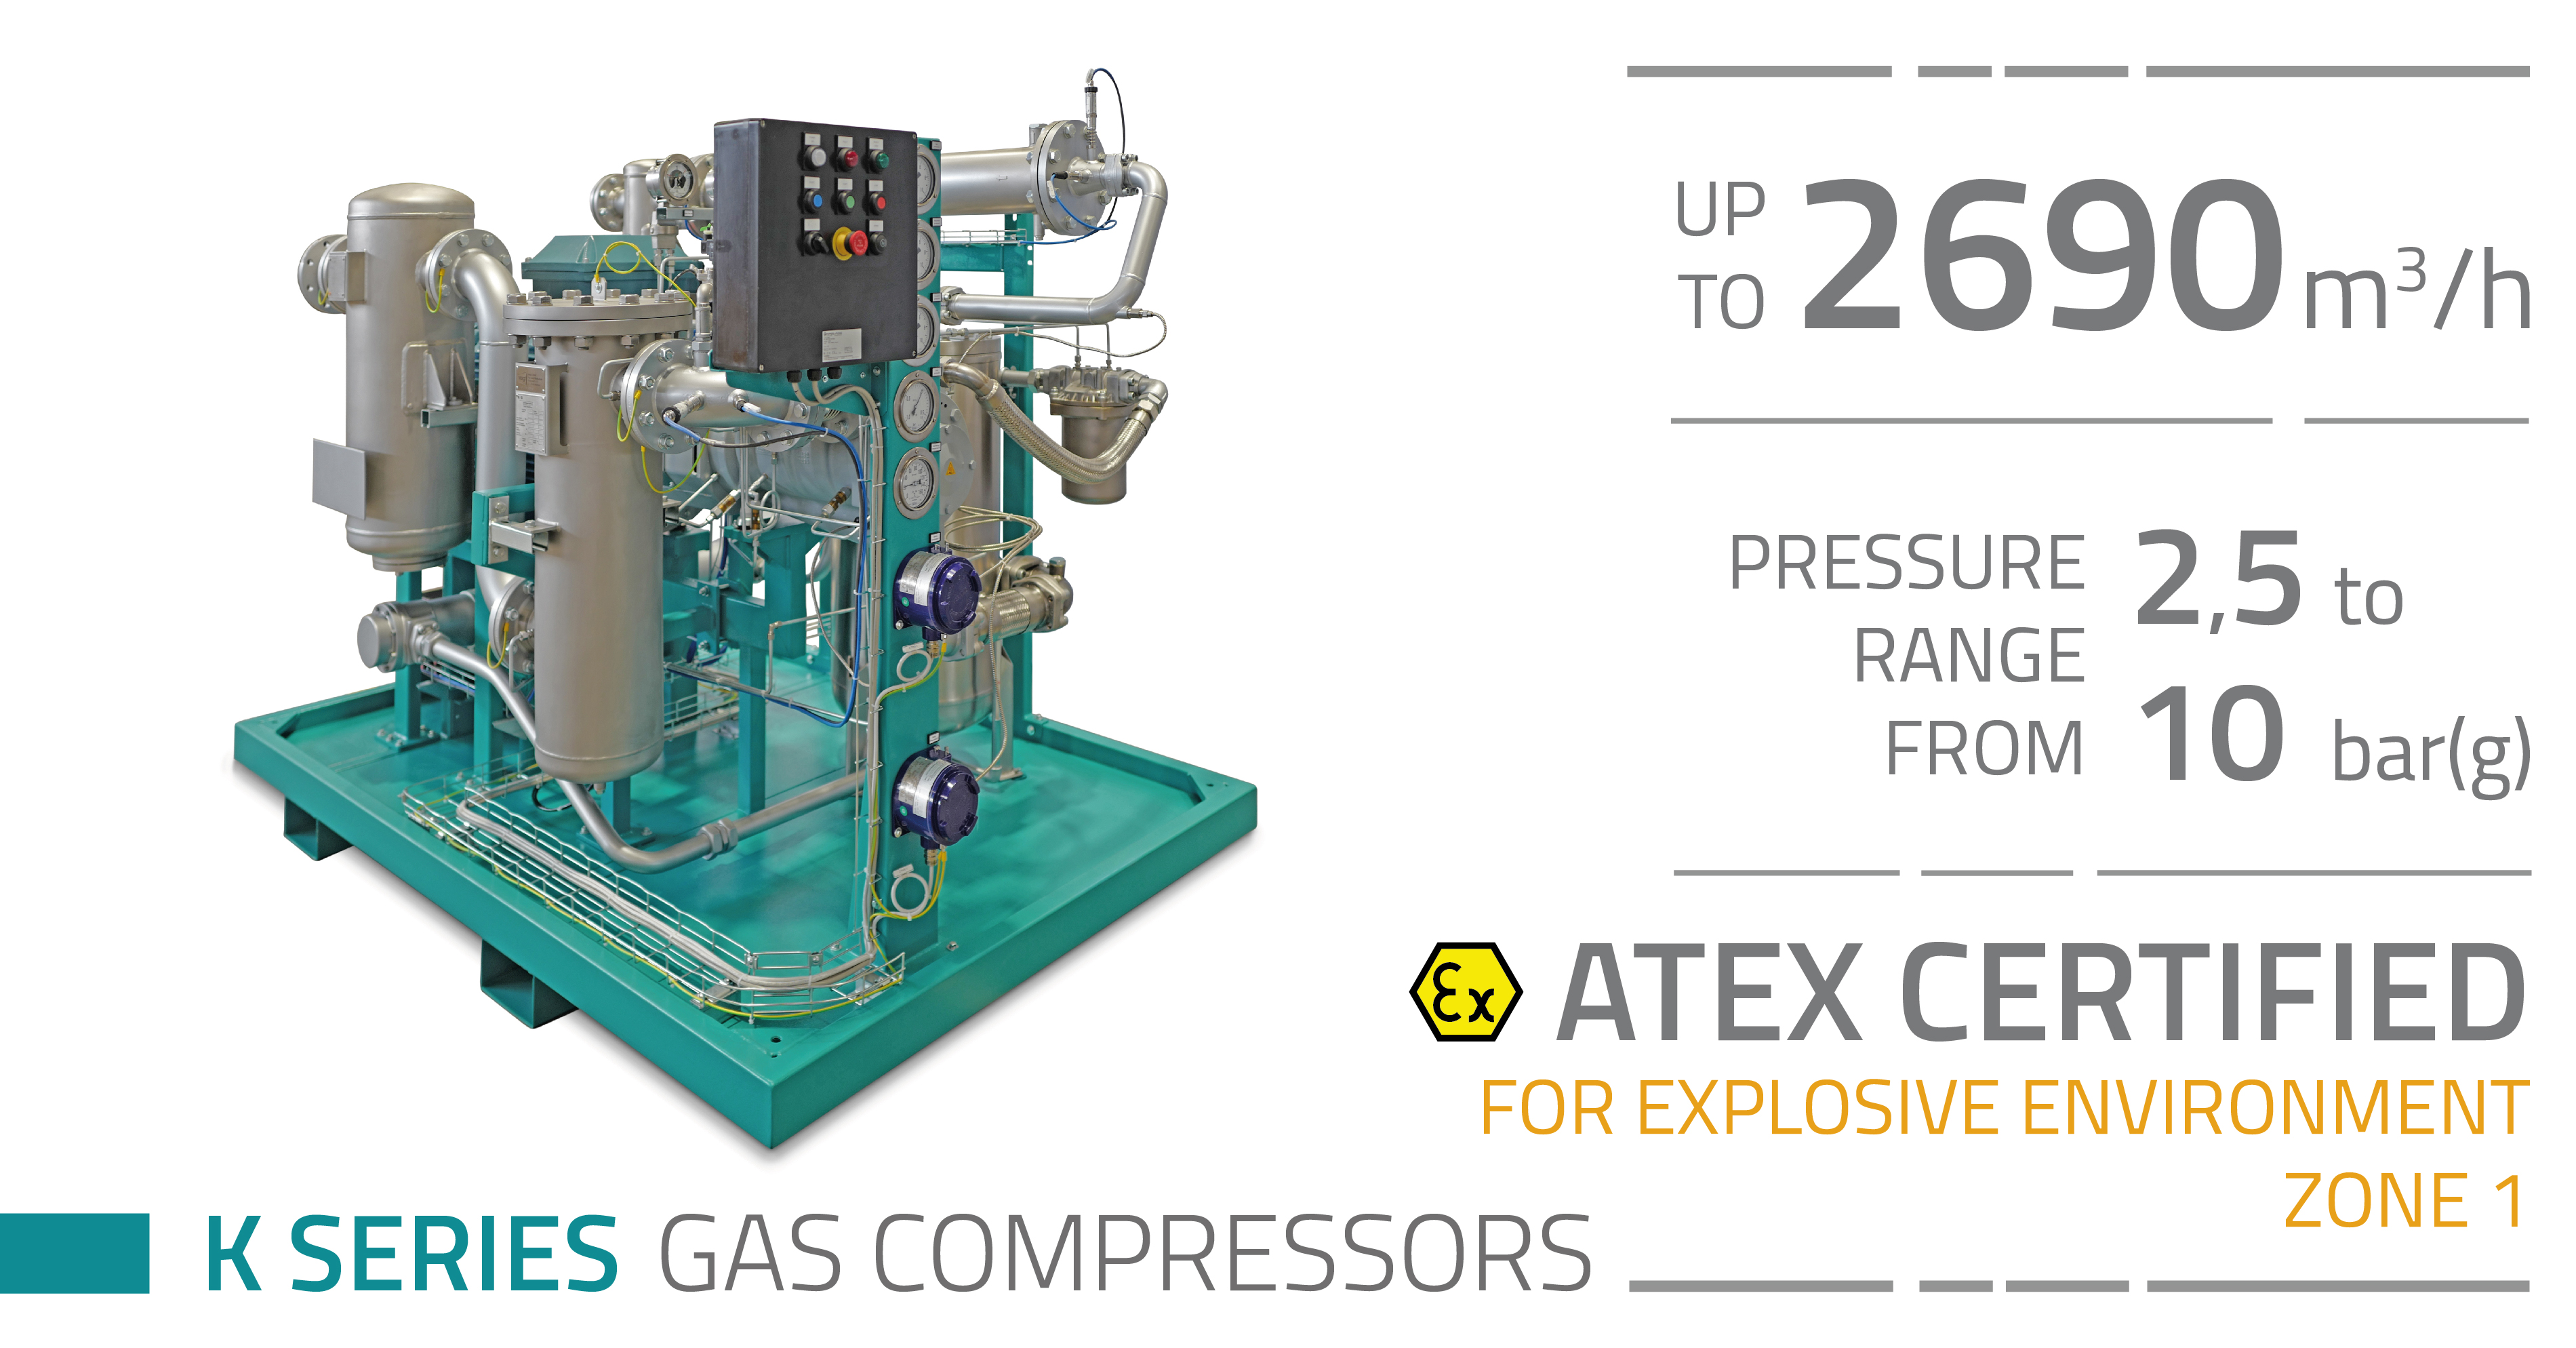 Pneumofore Rotary Vane Gas Compressors - K Series